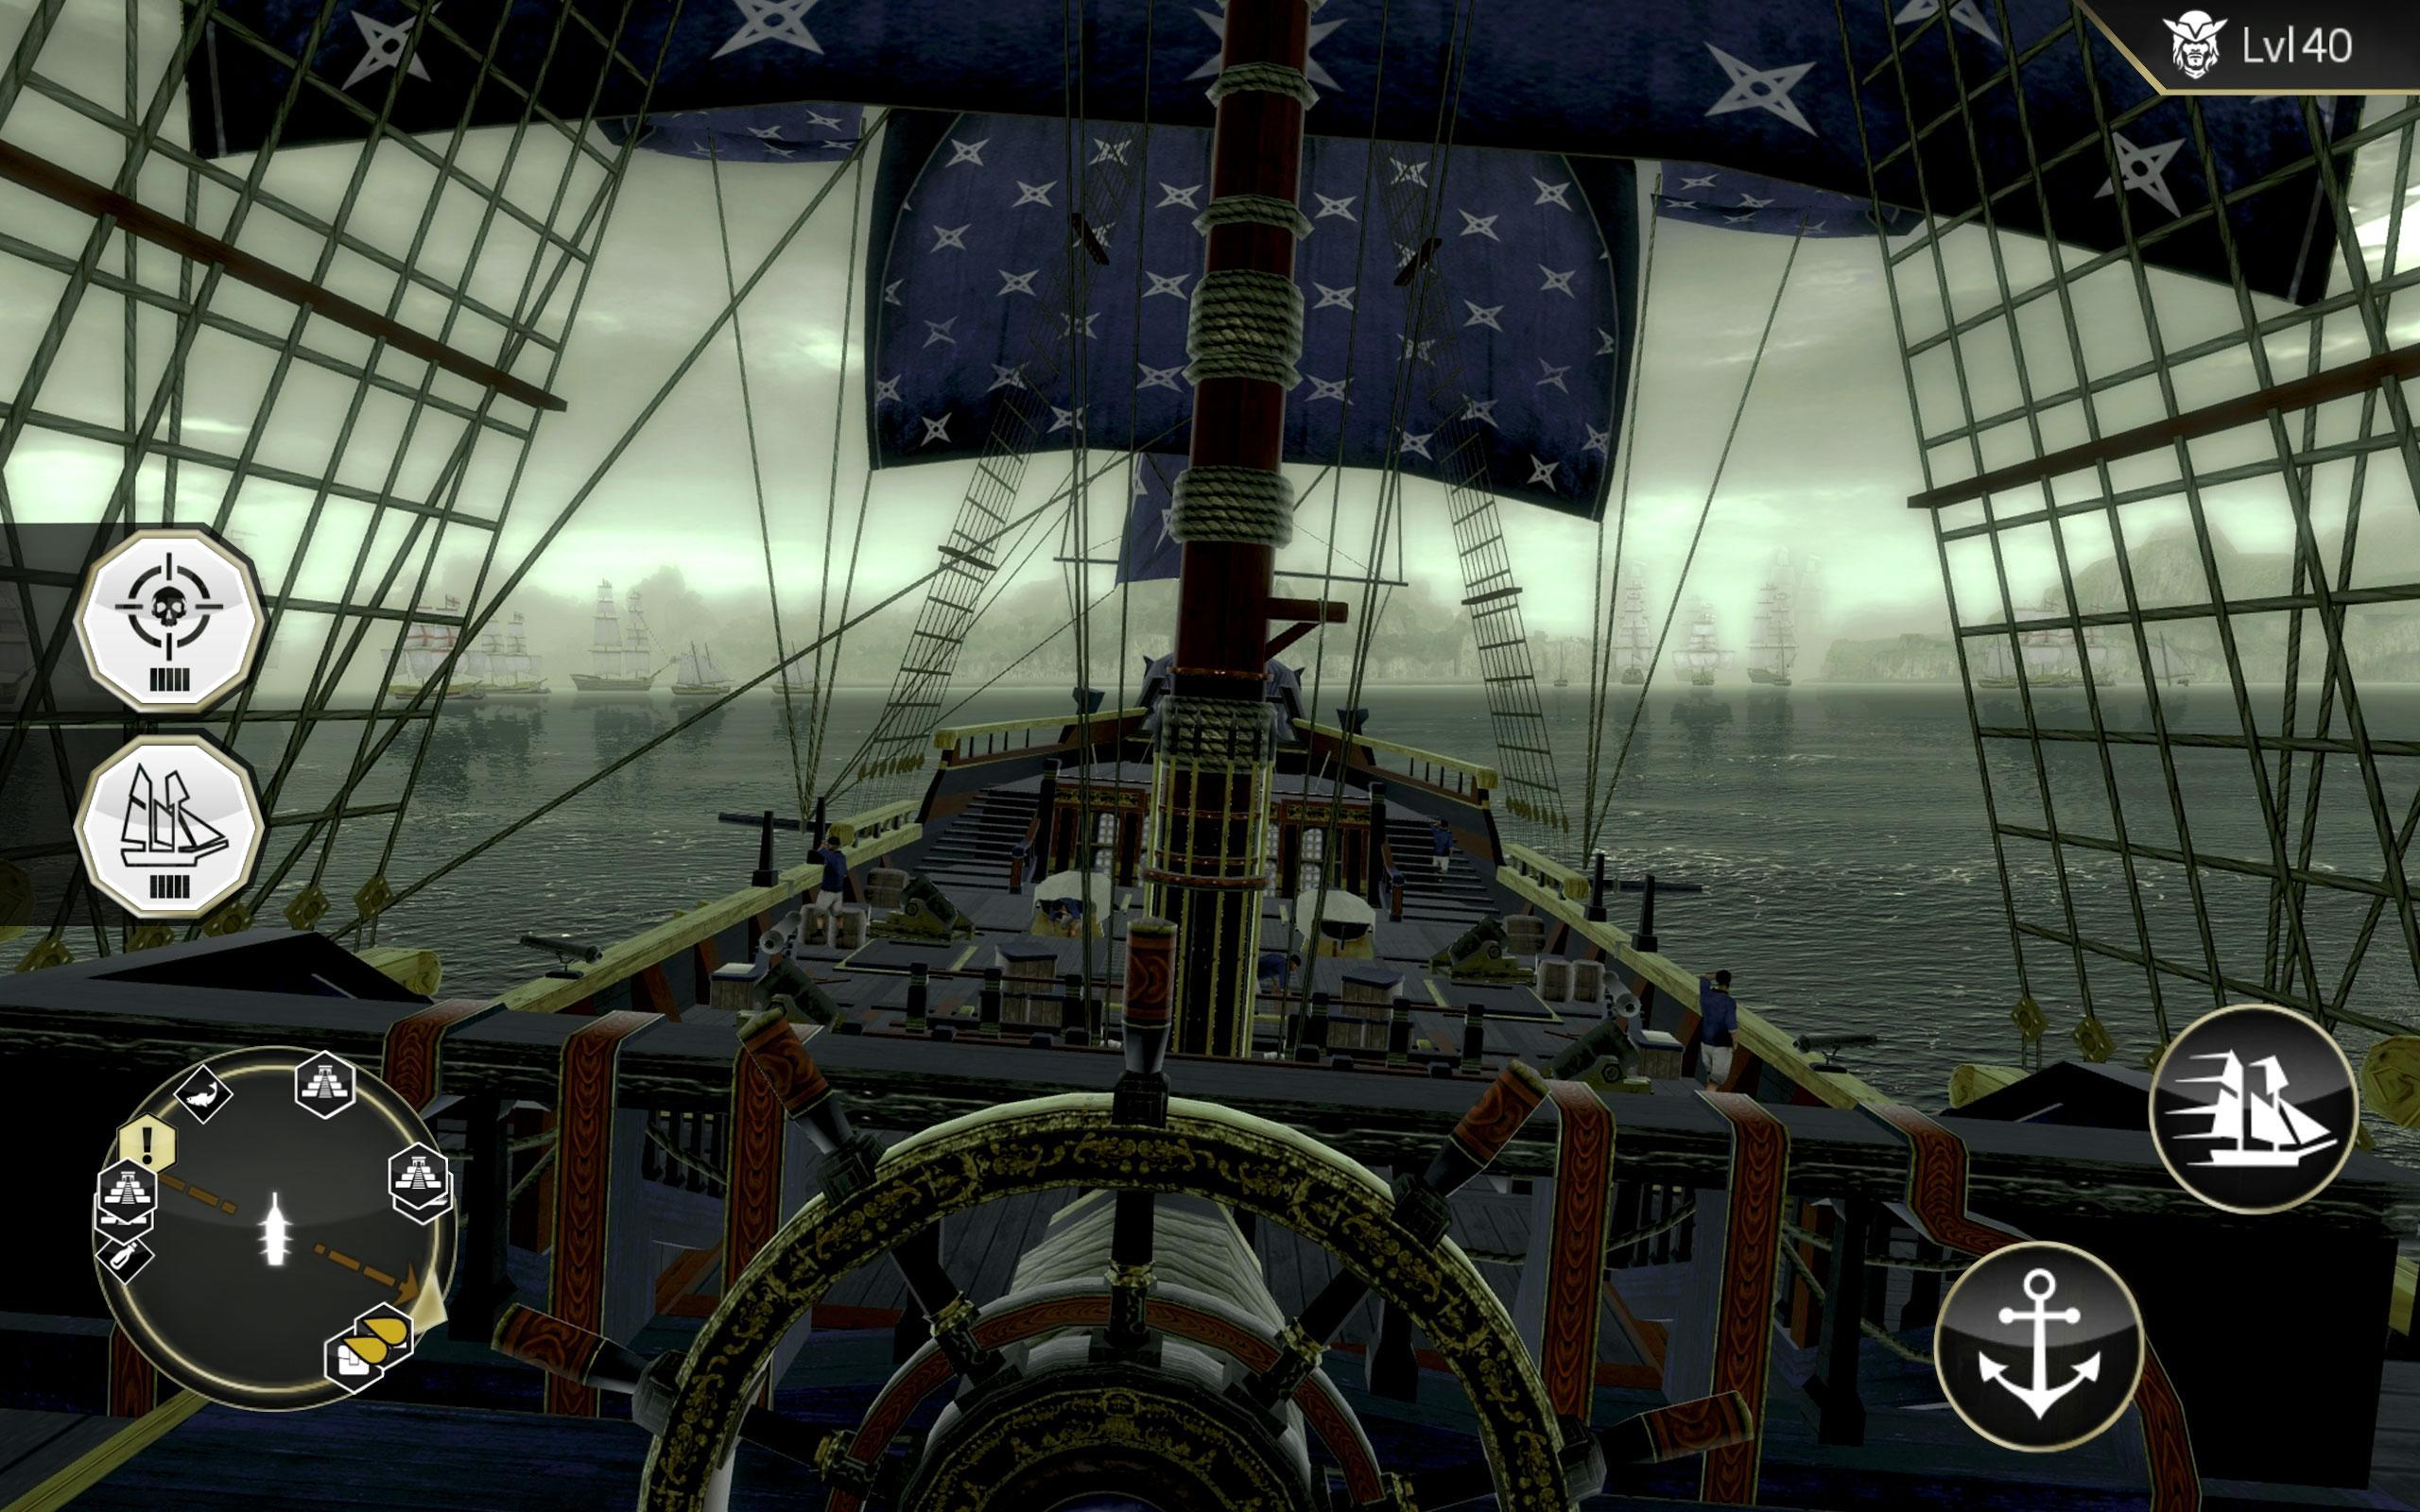 Assassin S Creed Pirates Apk Download Combat With Your Ship Be Wealthy Or Be Die